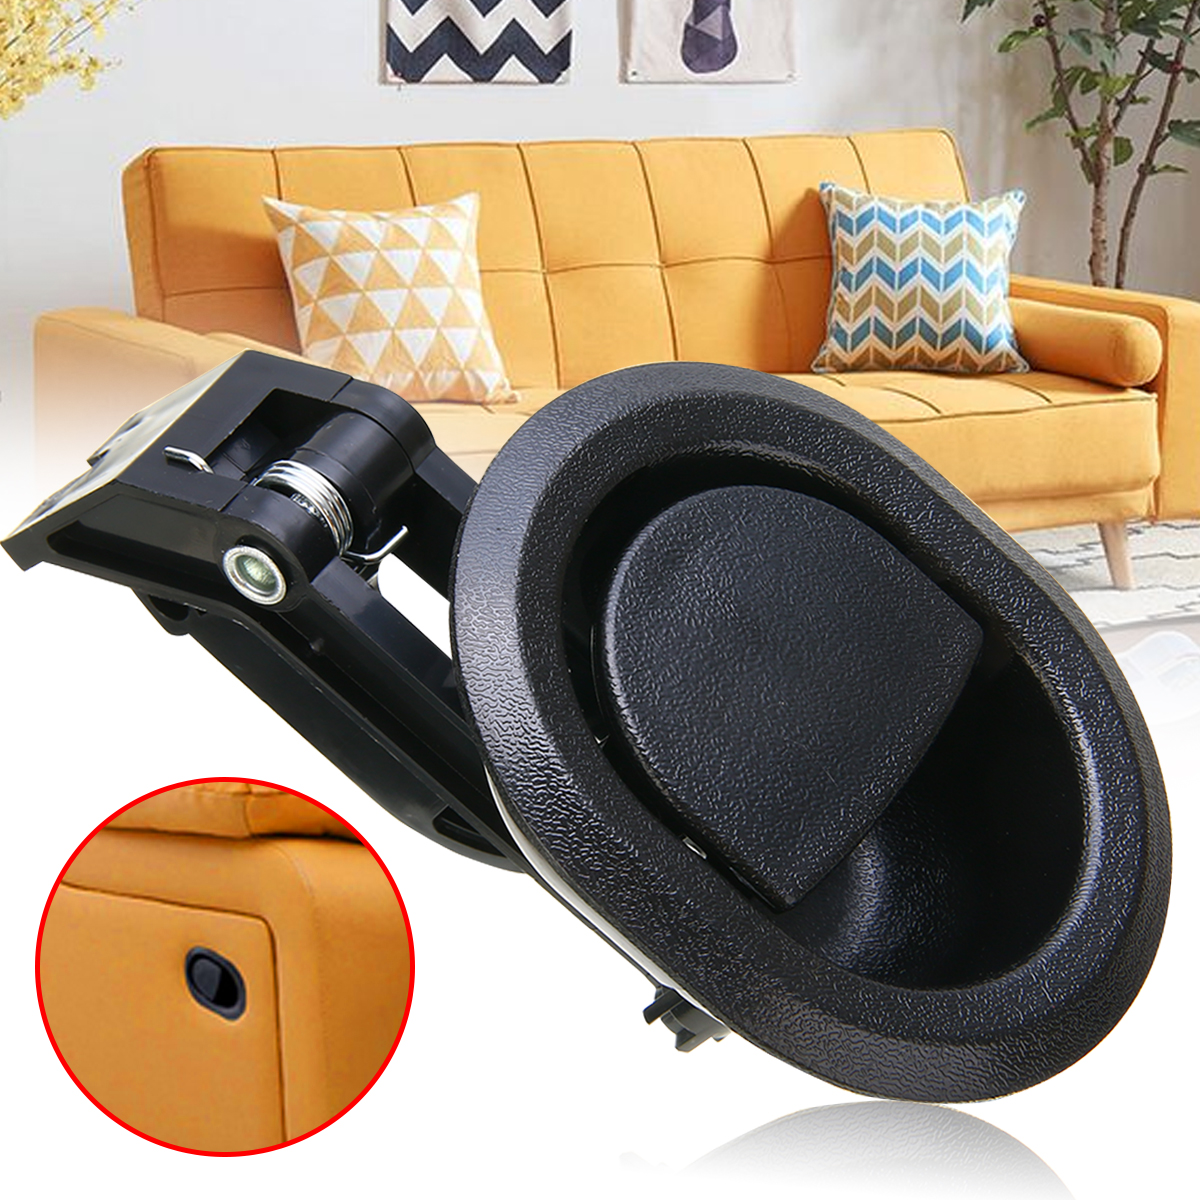 Pleasing Us 2 73 26 Off 1Pc Hard Plastic Release Lever Handle Black Cabinet Pulls Replacement Sofa Recliner Release Pull Handle For Oval Recliner Chair In Squirreltailoven Fun Painted Chair Ideas Images Squirreltailovenorg